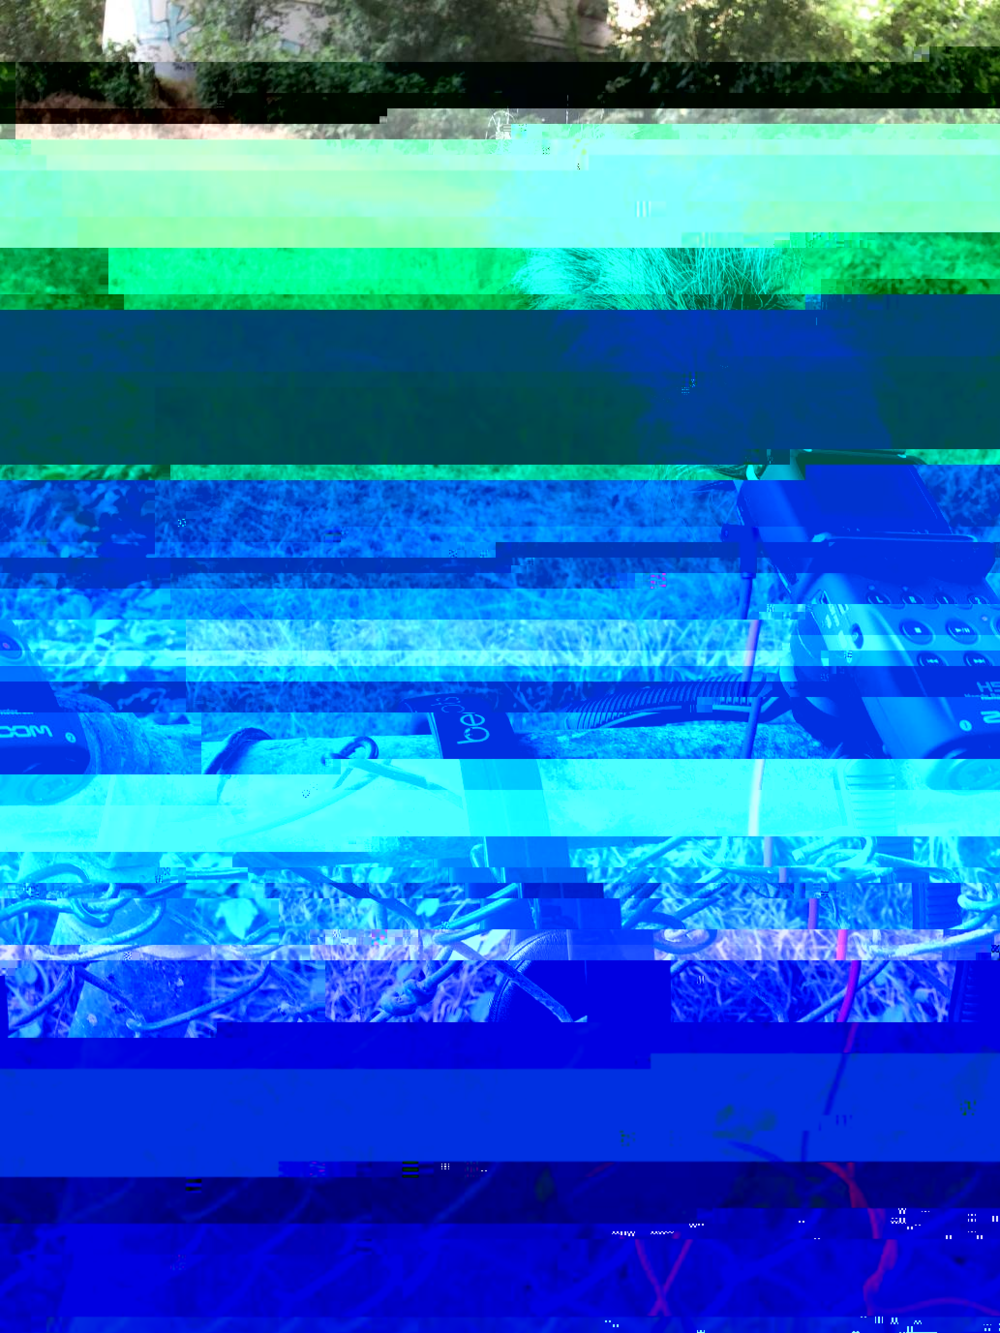 DhwsbY9UcAEmehn-glitched-7-12-2018-3-13-28-PM.png